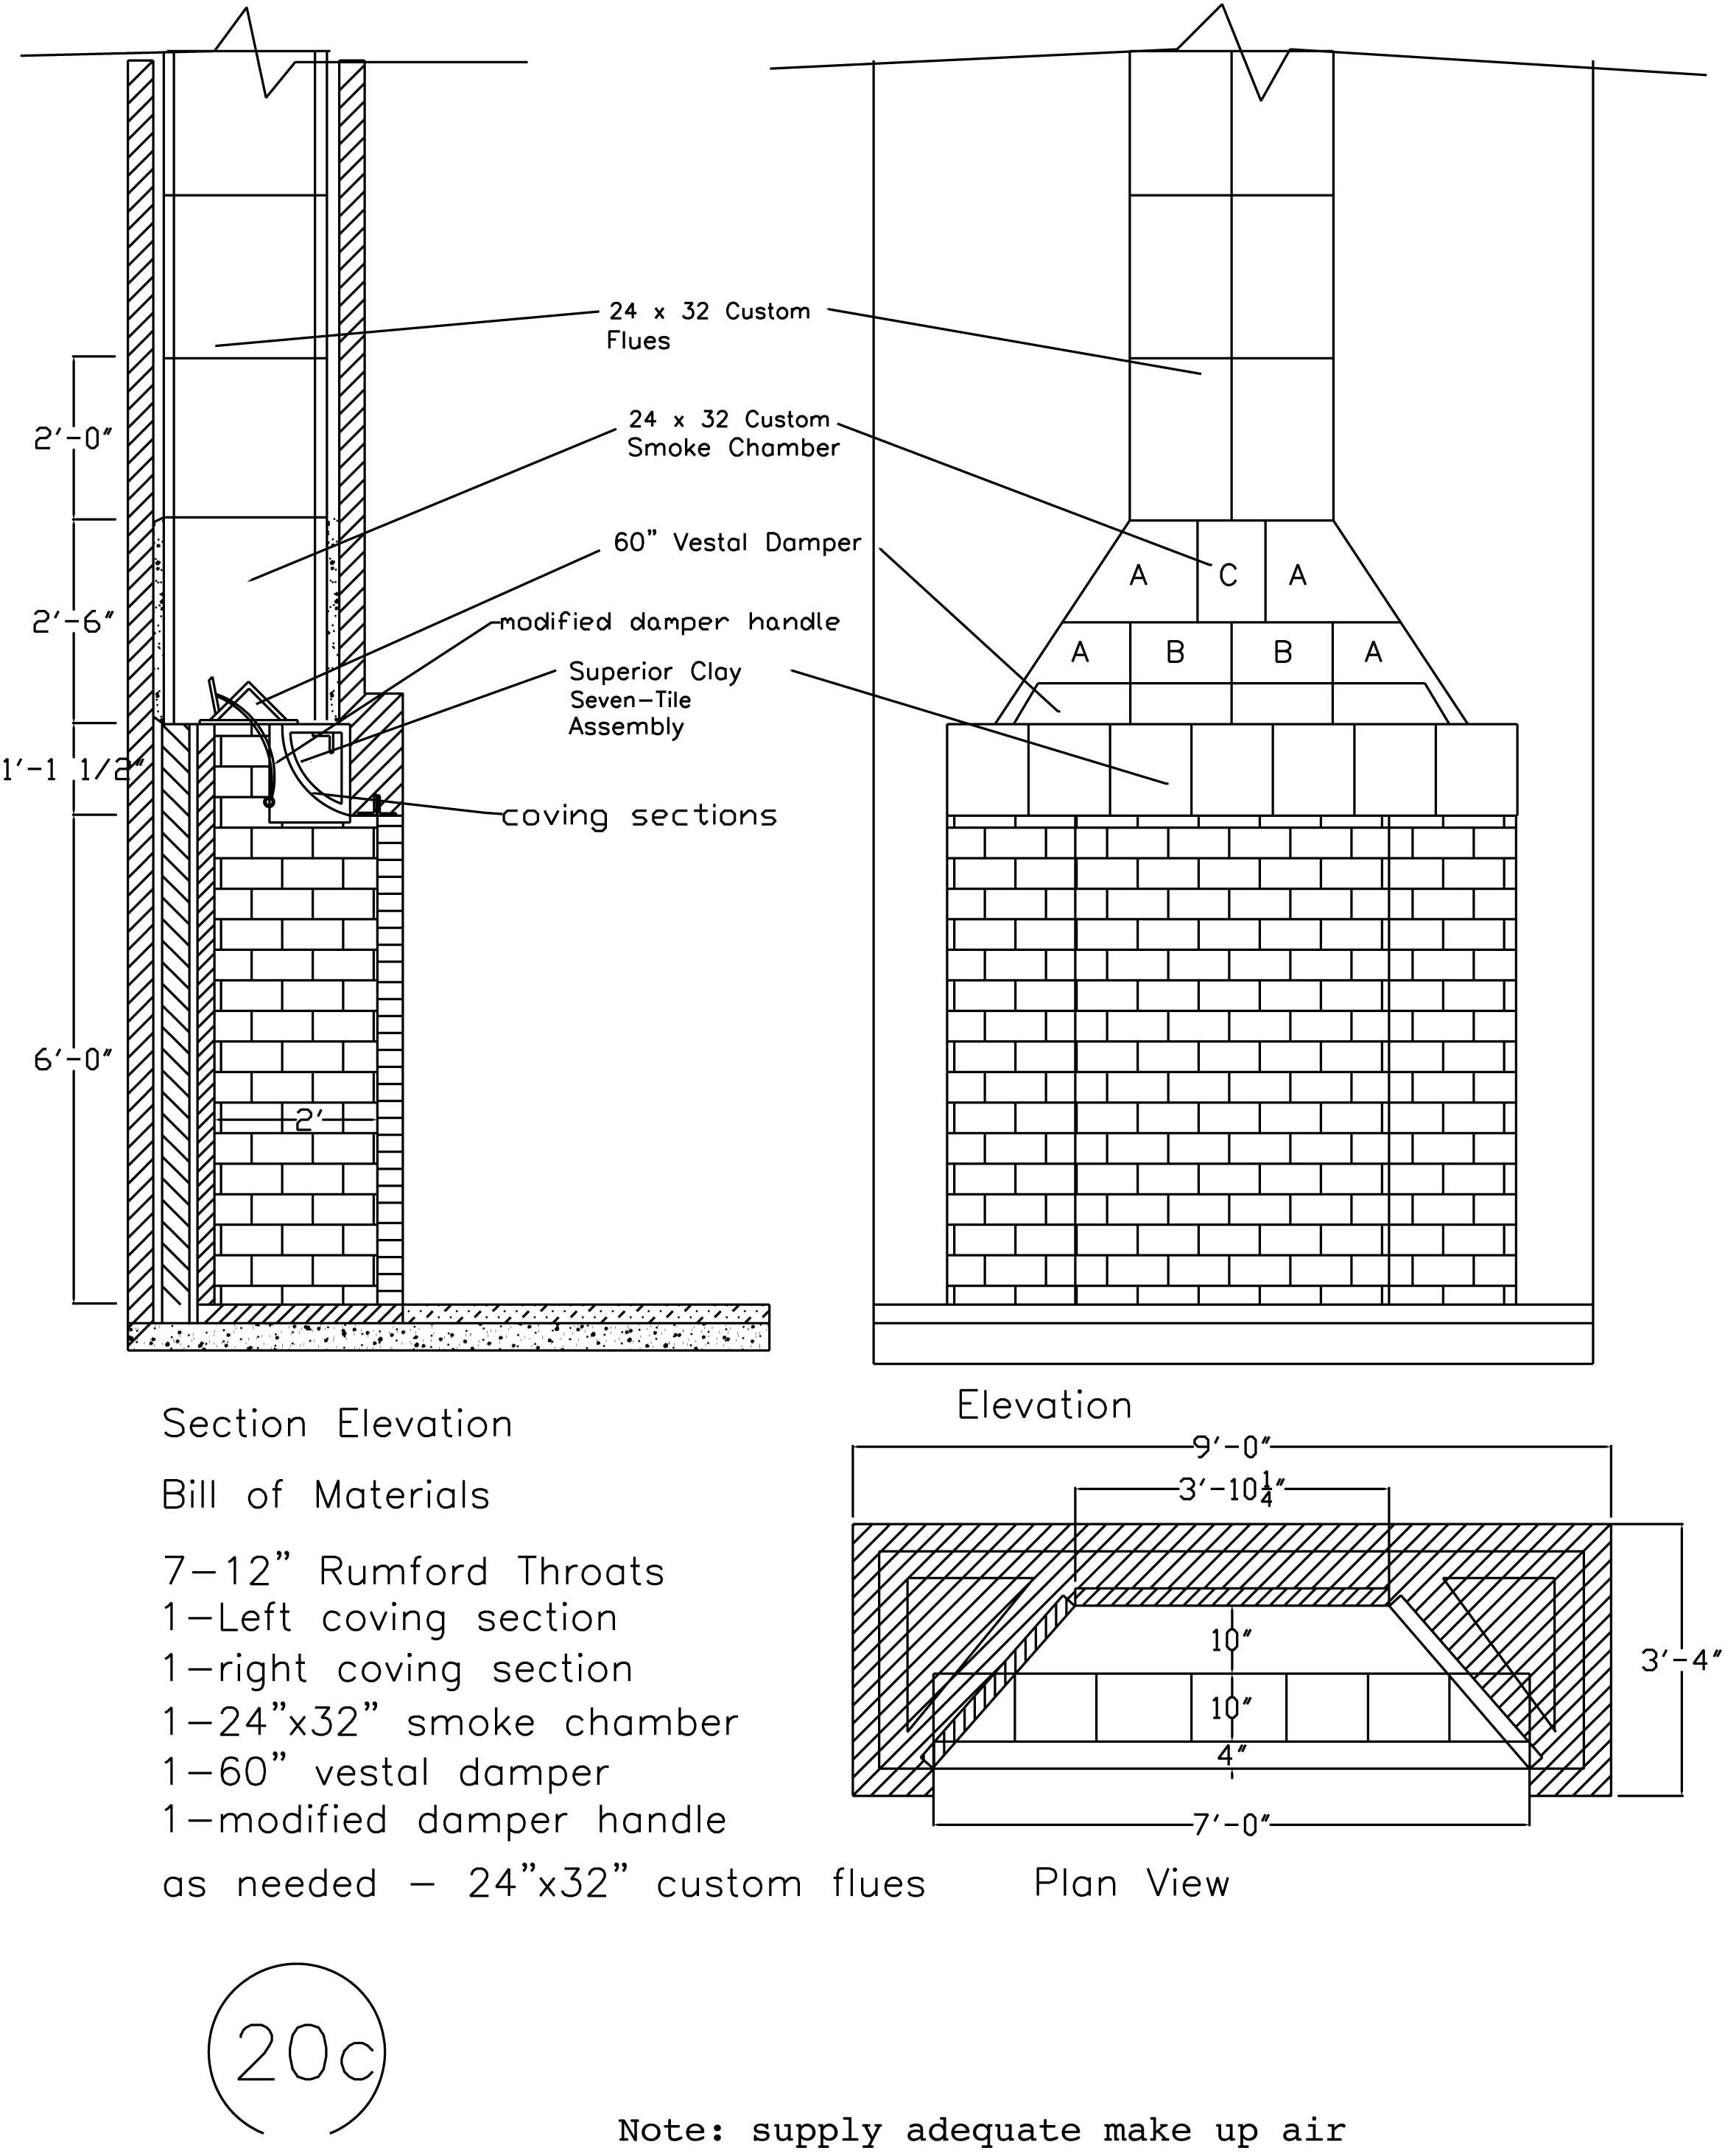 Rumford Fireplace Plans Instructions Chimney Design Masonry Fireplace Rumford Fireplace